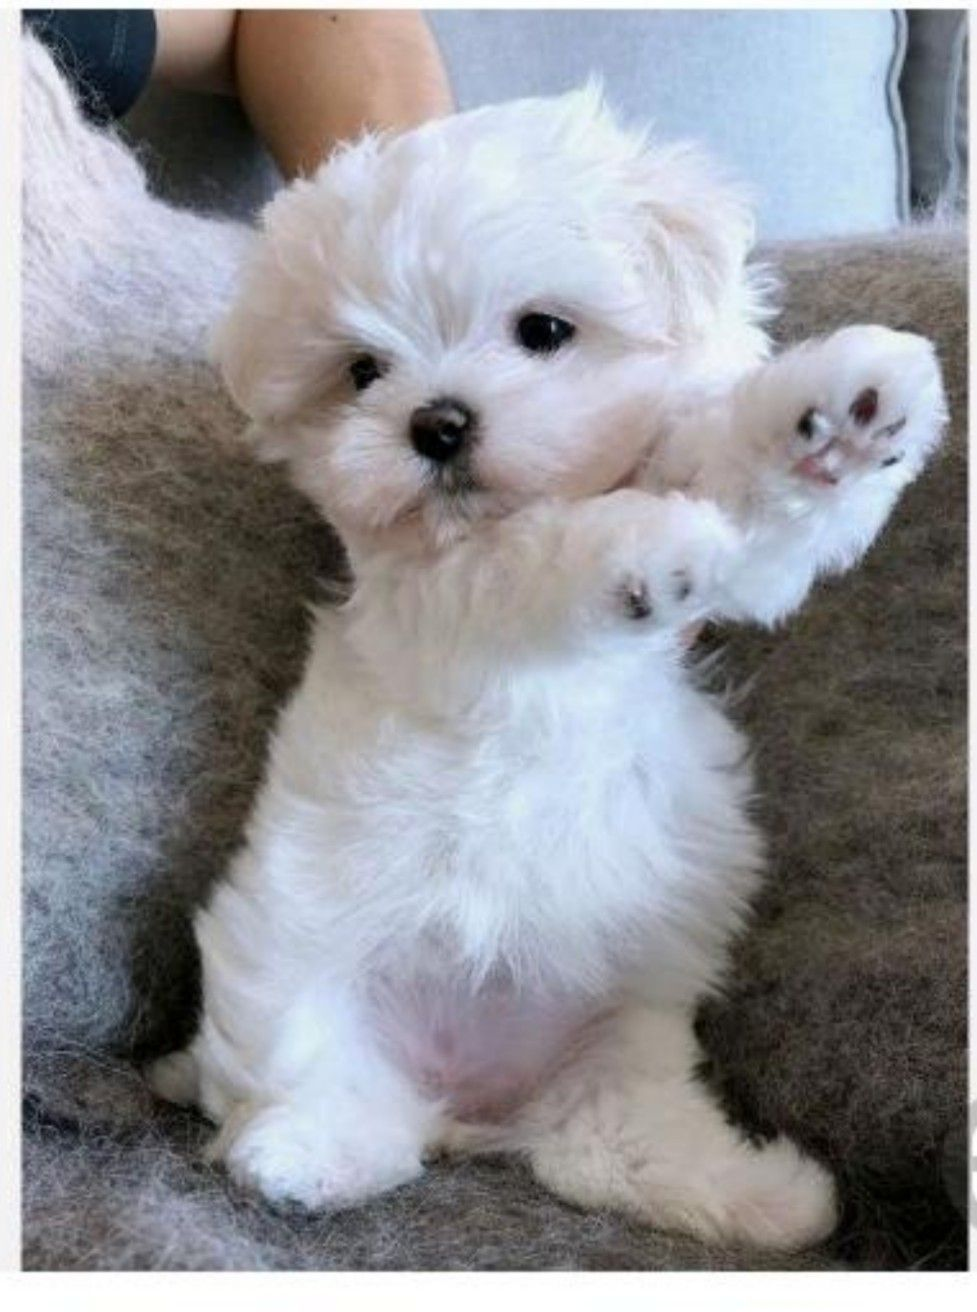 Pin By Elizabeth On Cuteness Cute Baby Animals Cute Dogs And